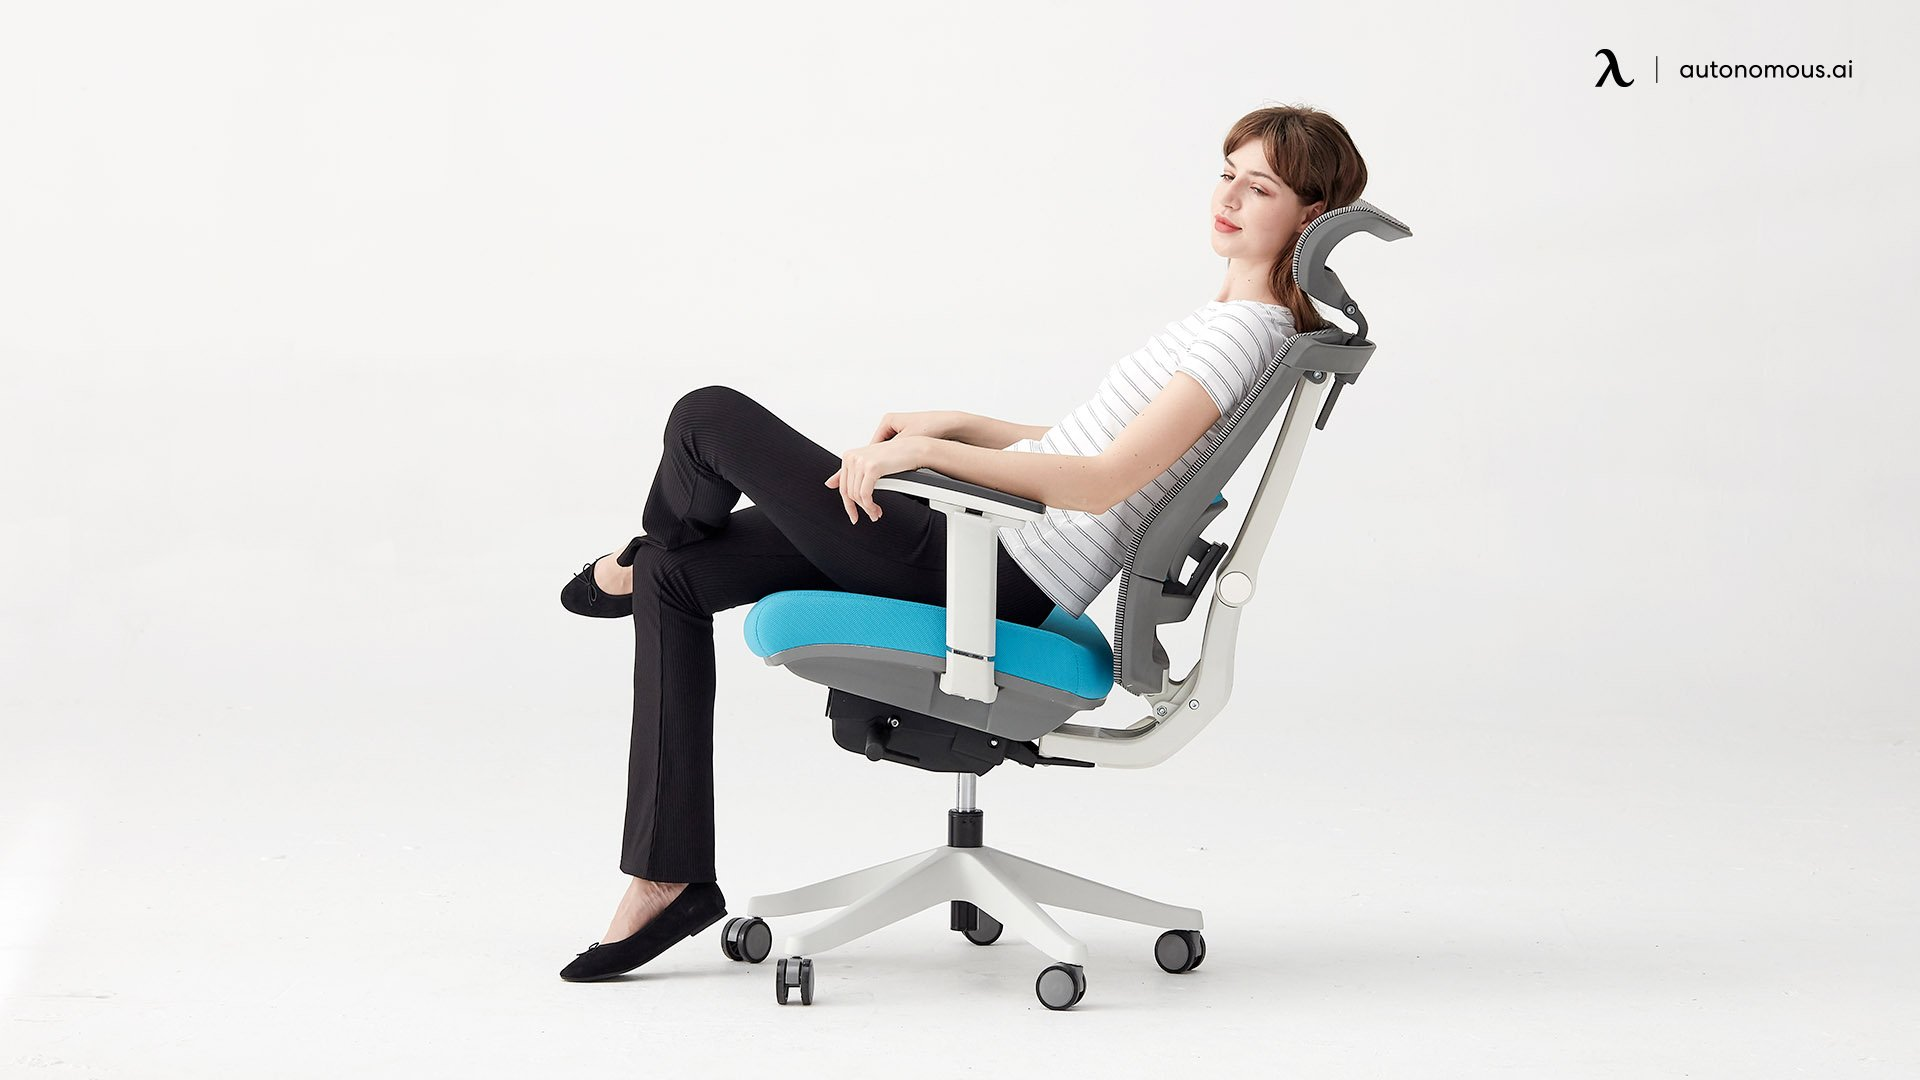 What Specifications Does the ErgoChair2 Have?